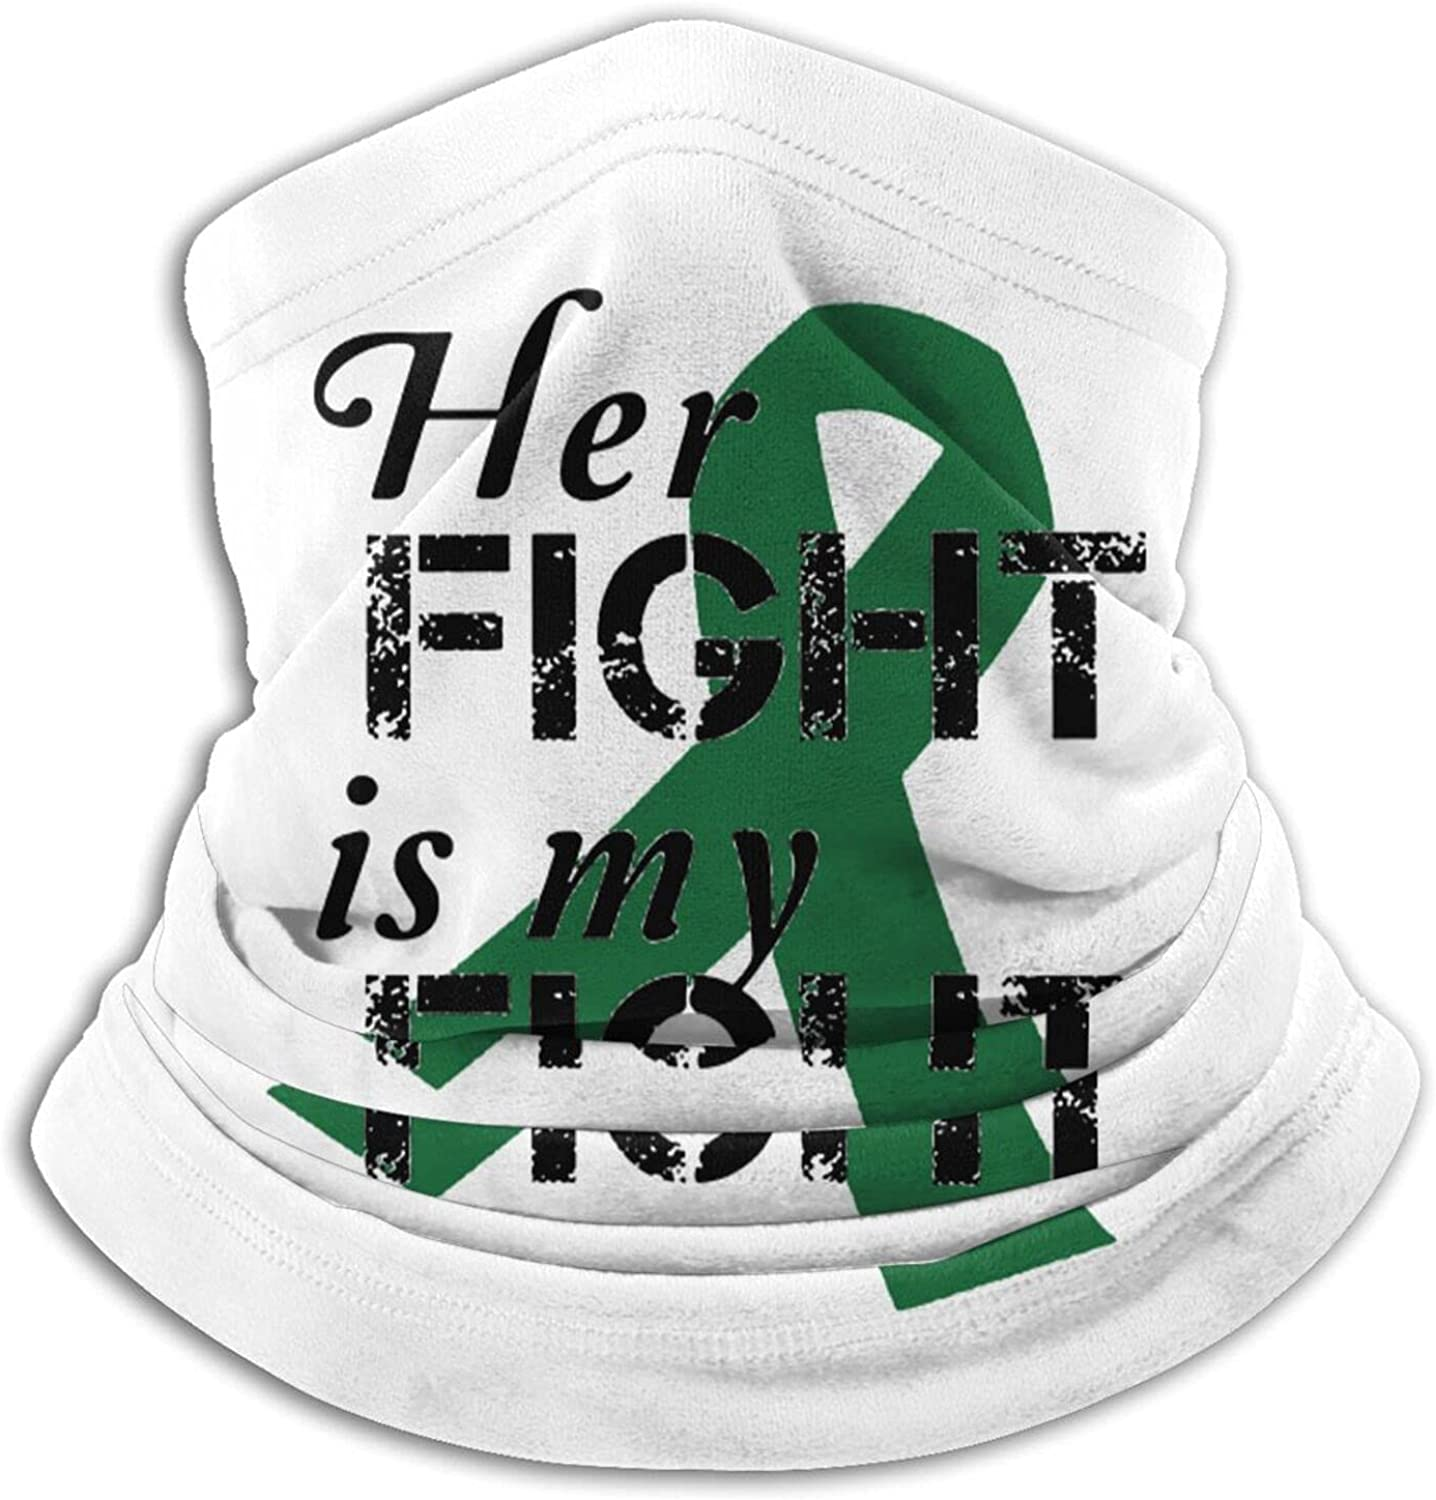 Liver cancer emerald green ribbon unisex winter neck gaiter face cover mask, windproof balaclava scarf for fishing, running & hiking